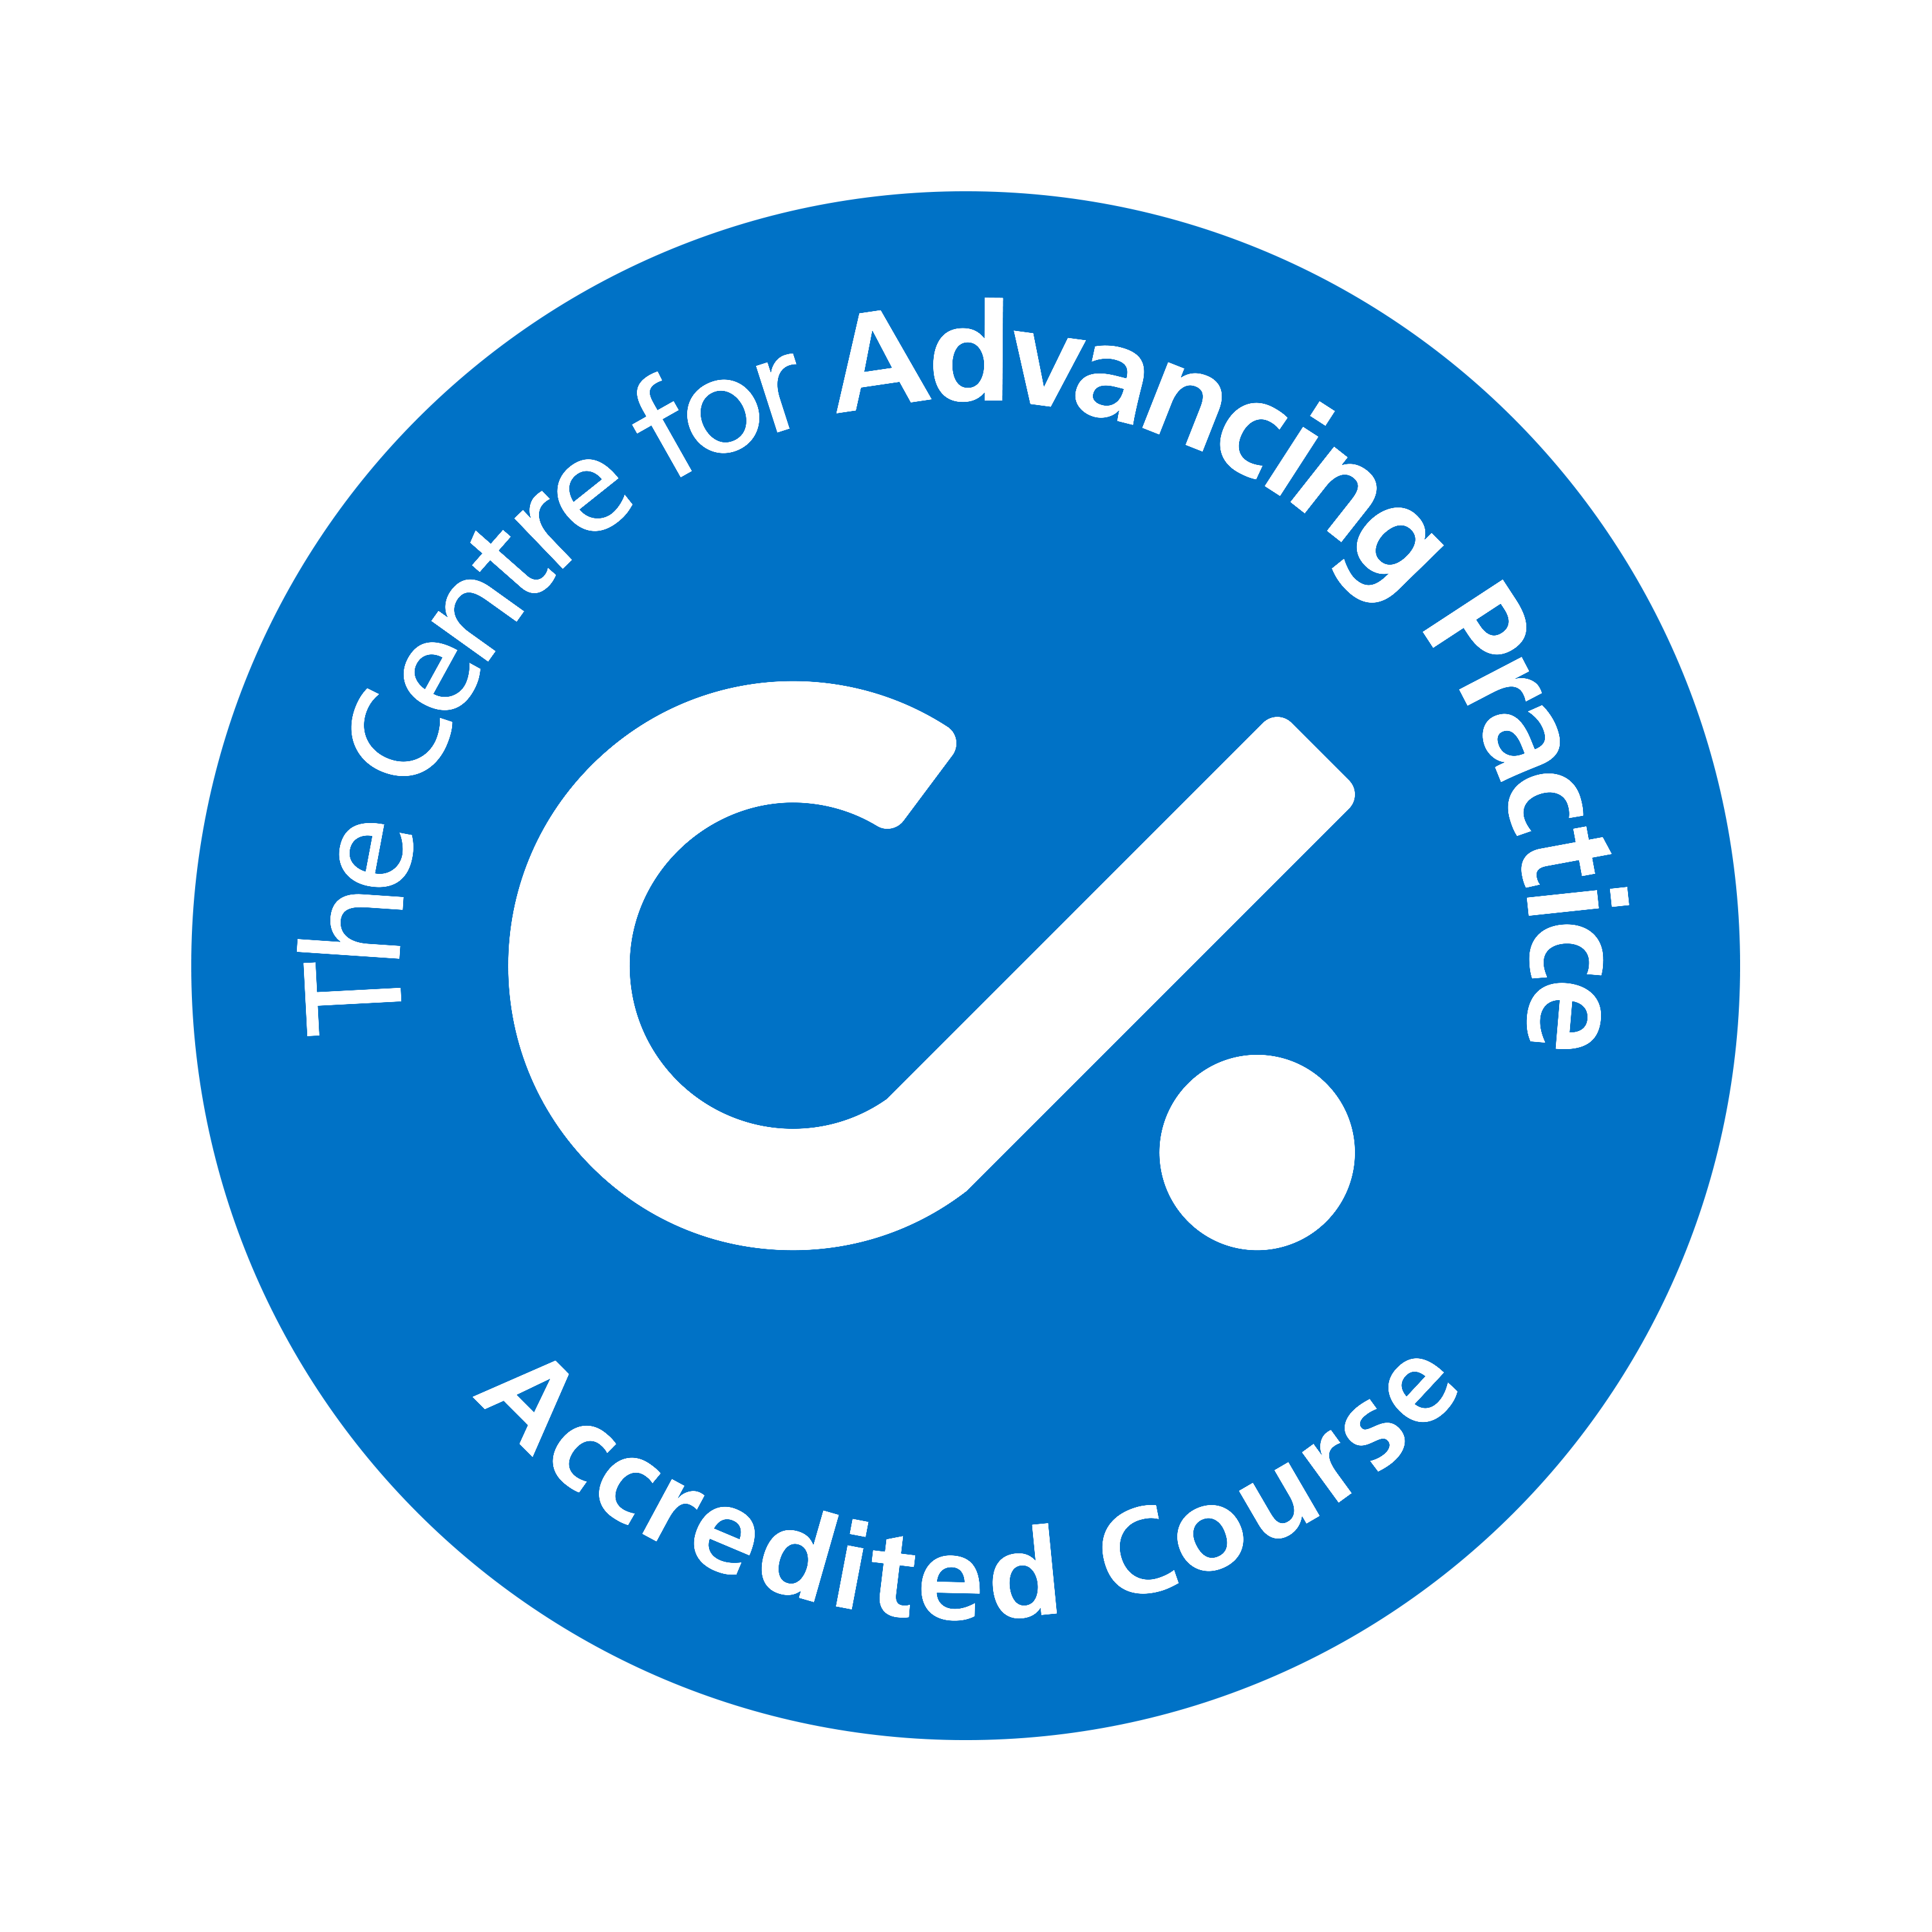 Centre for Advancing Practice